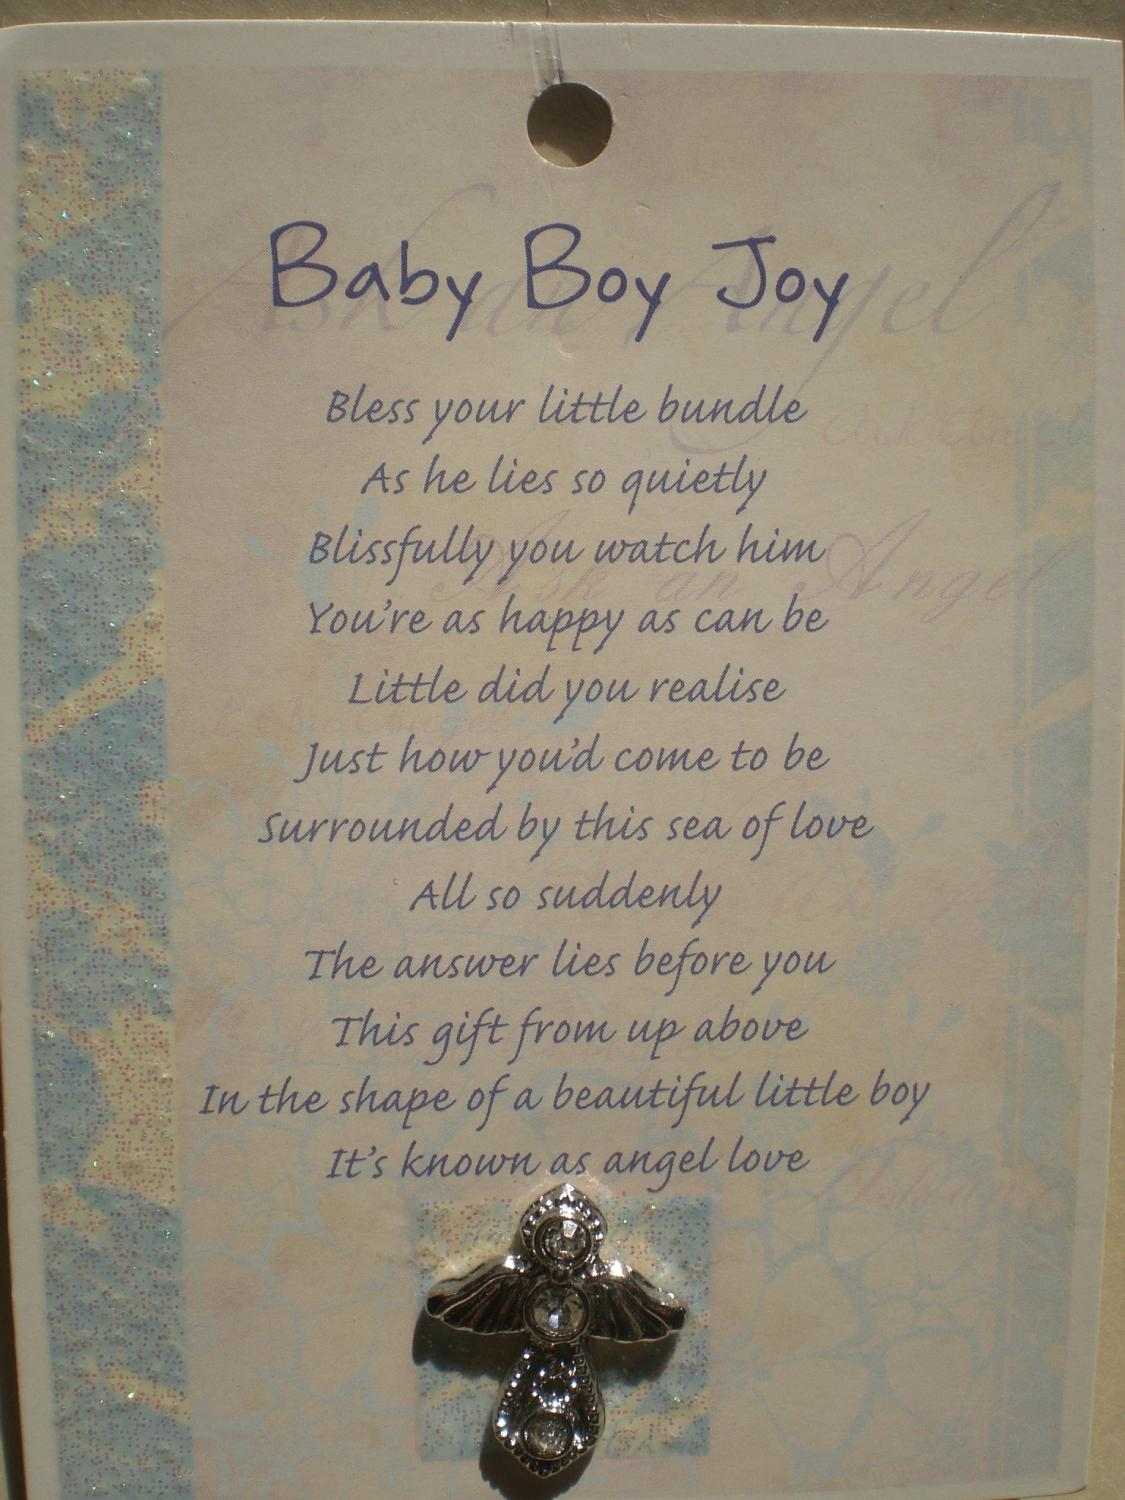 Baby Boy Joy Angel (silver)